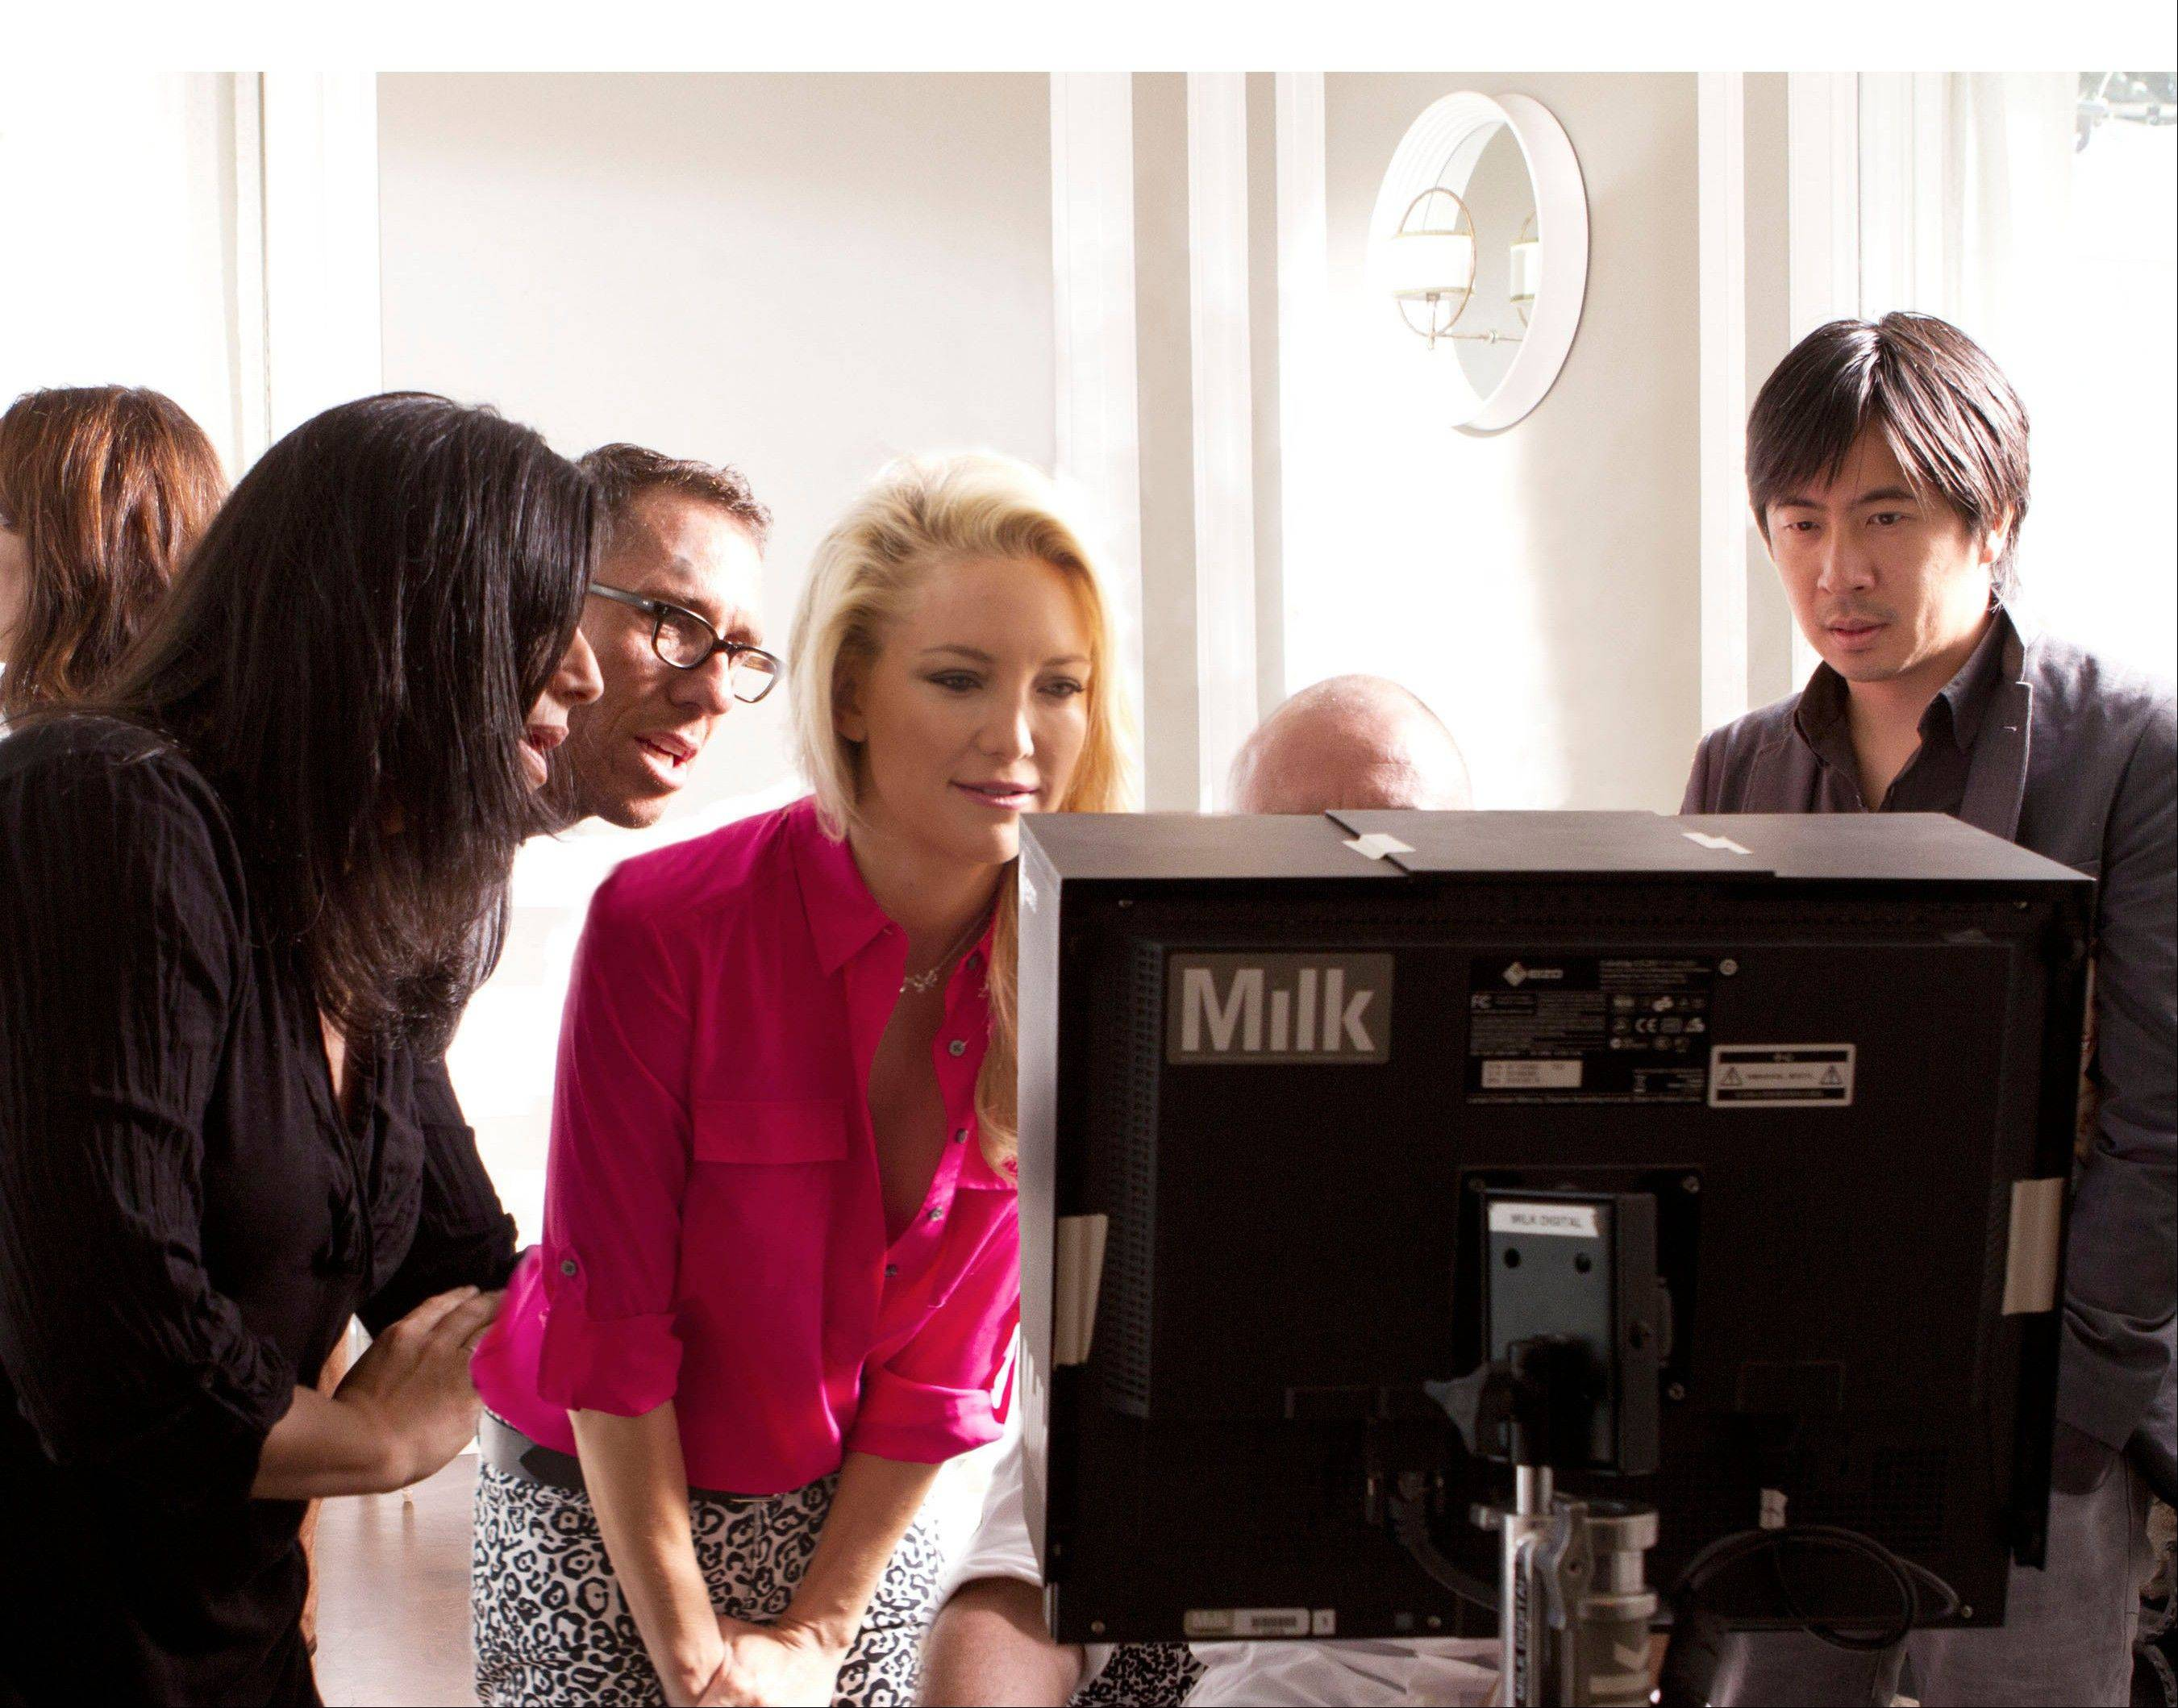 Kate Hudson works closely with Ann Taylor team on set while shooting Ann Taylor's Fall 2012 ad campaign in Pasadena, California.